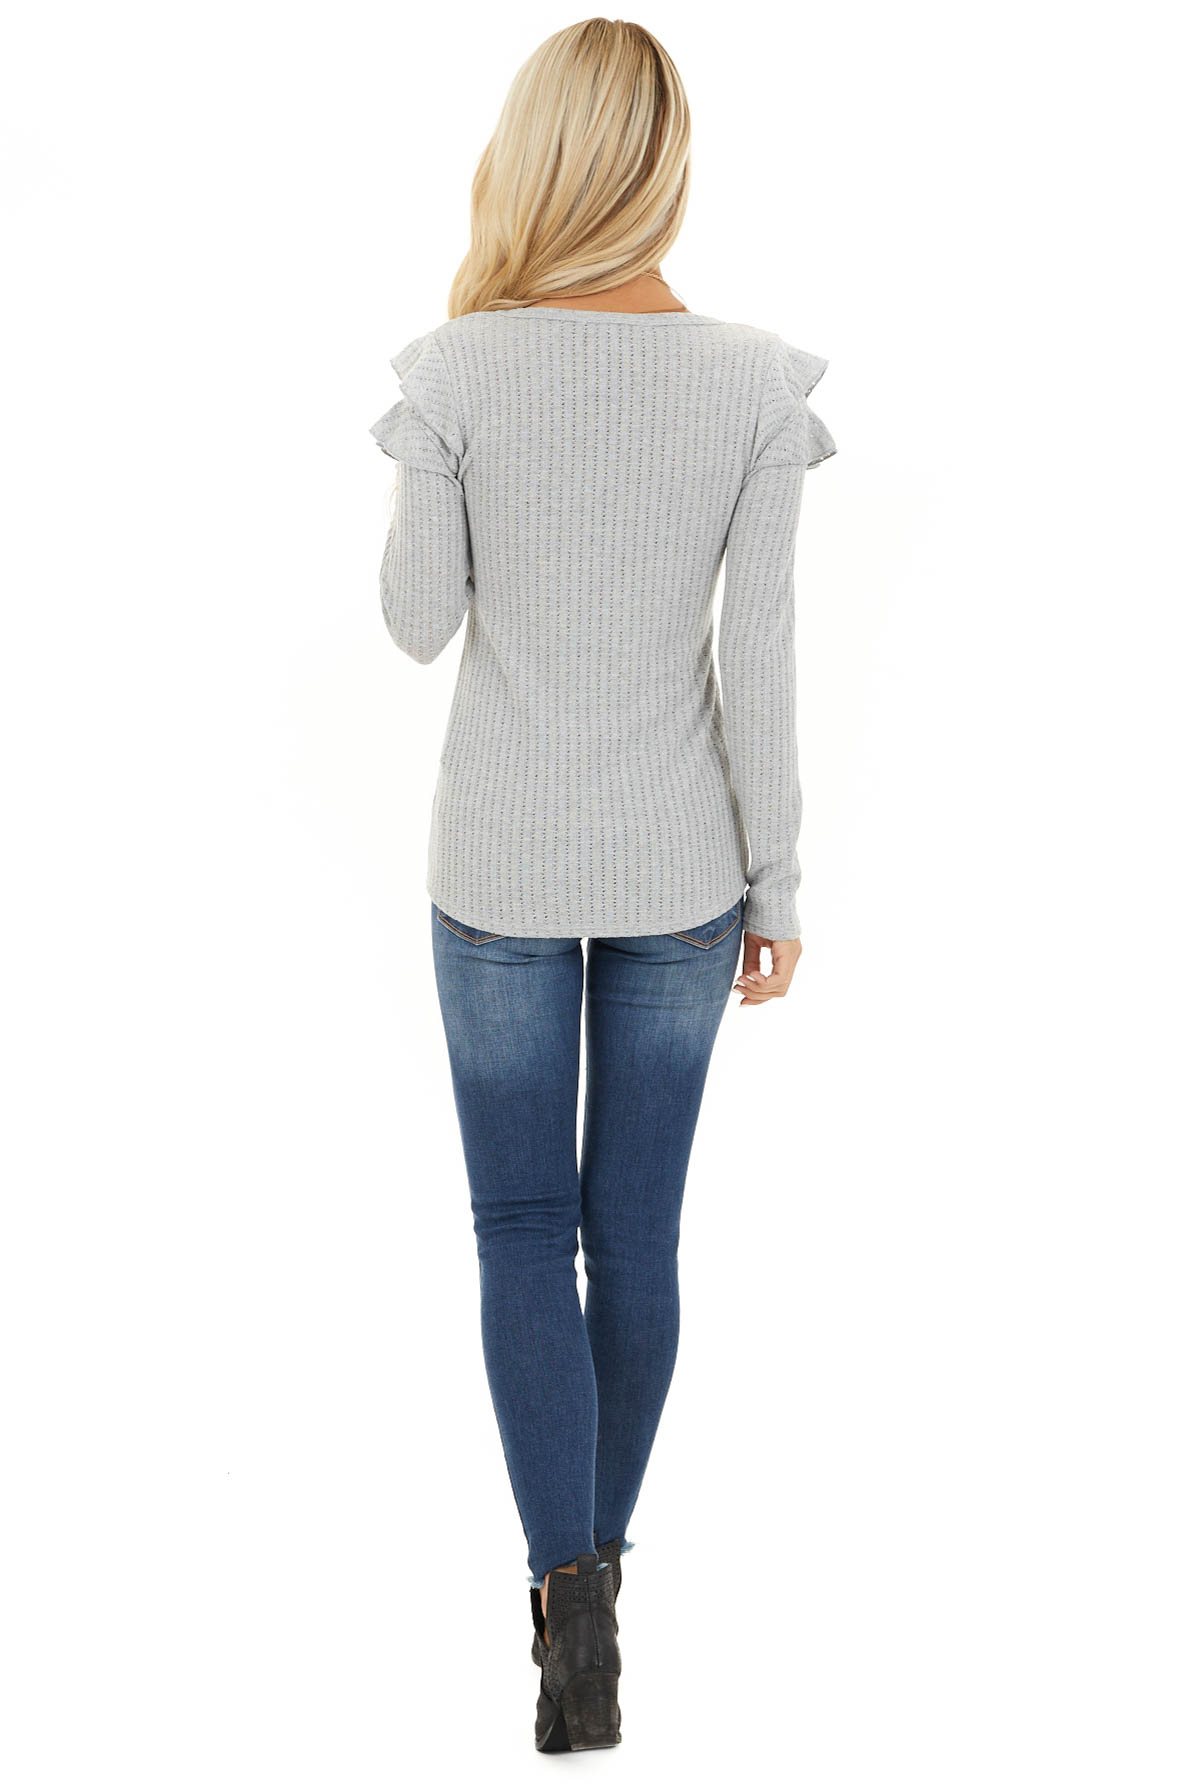 Soft Grey Knit Top with Long Sleeves and Ruffle Details back full body